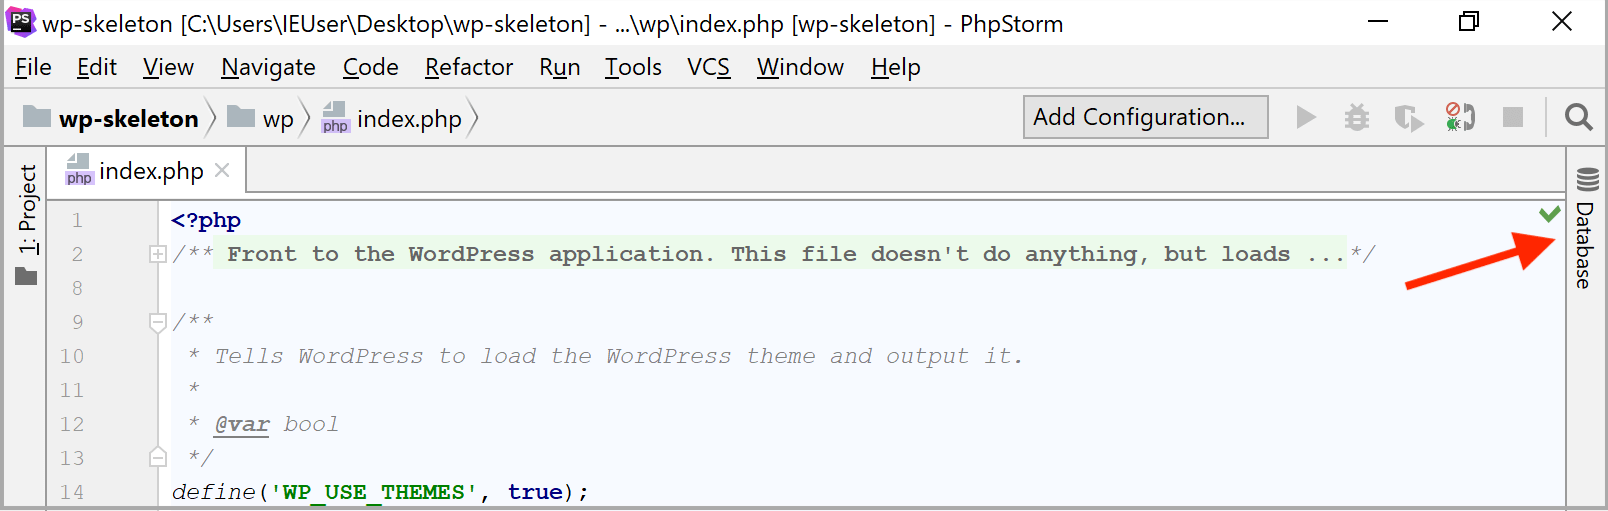 Installing an AMP Package - Help | PhpStorm